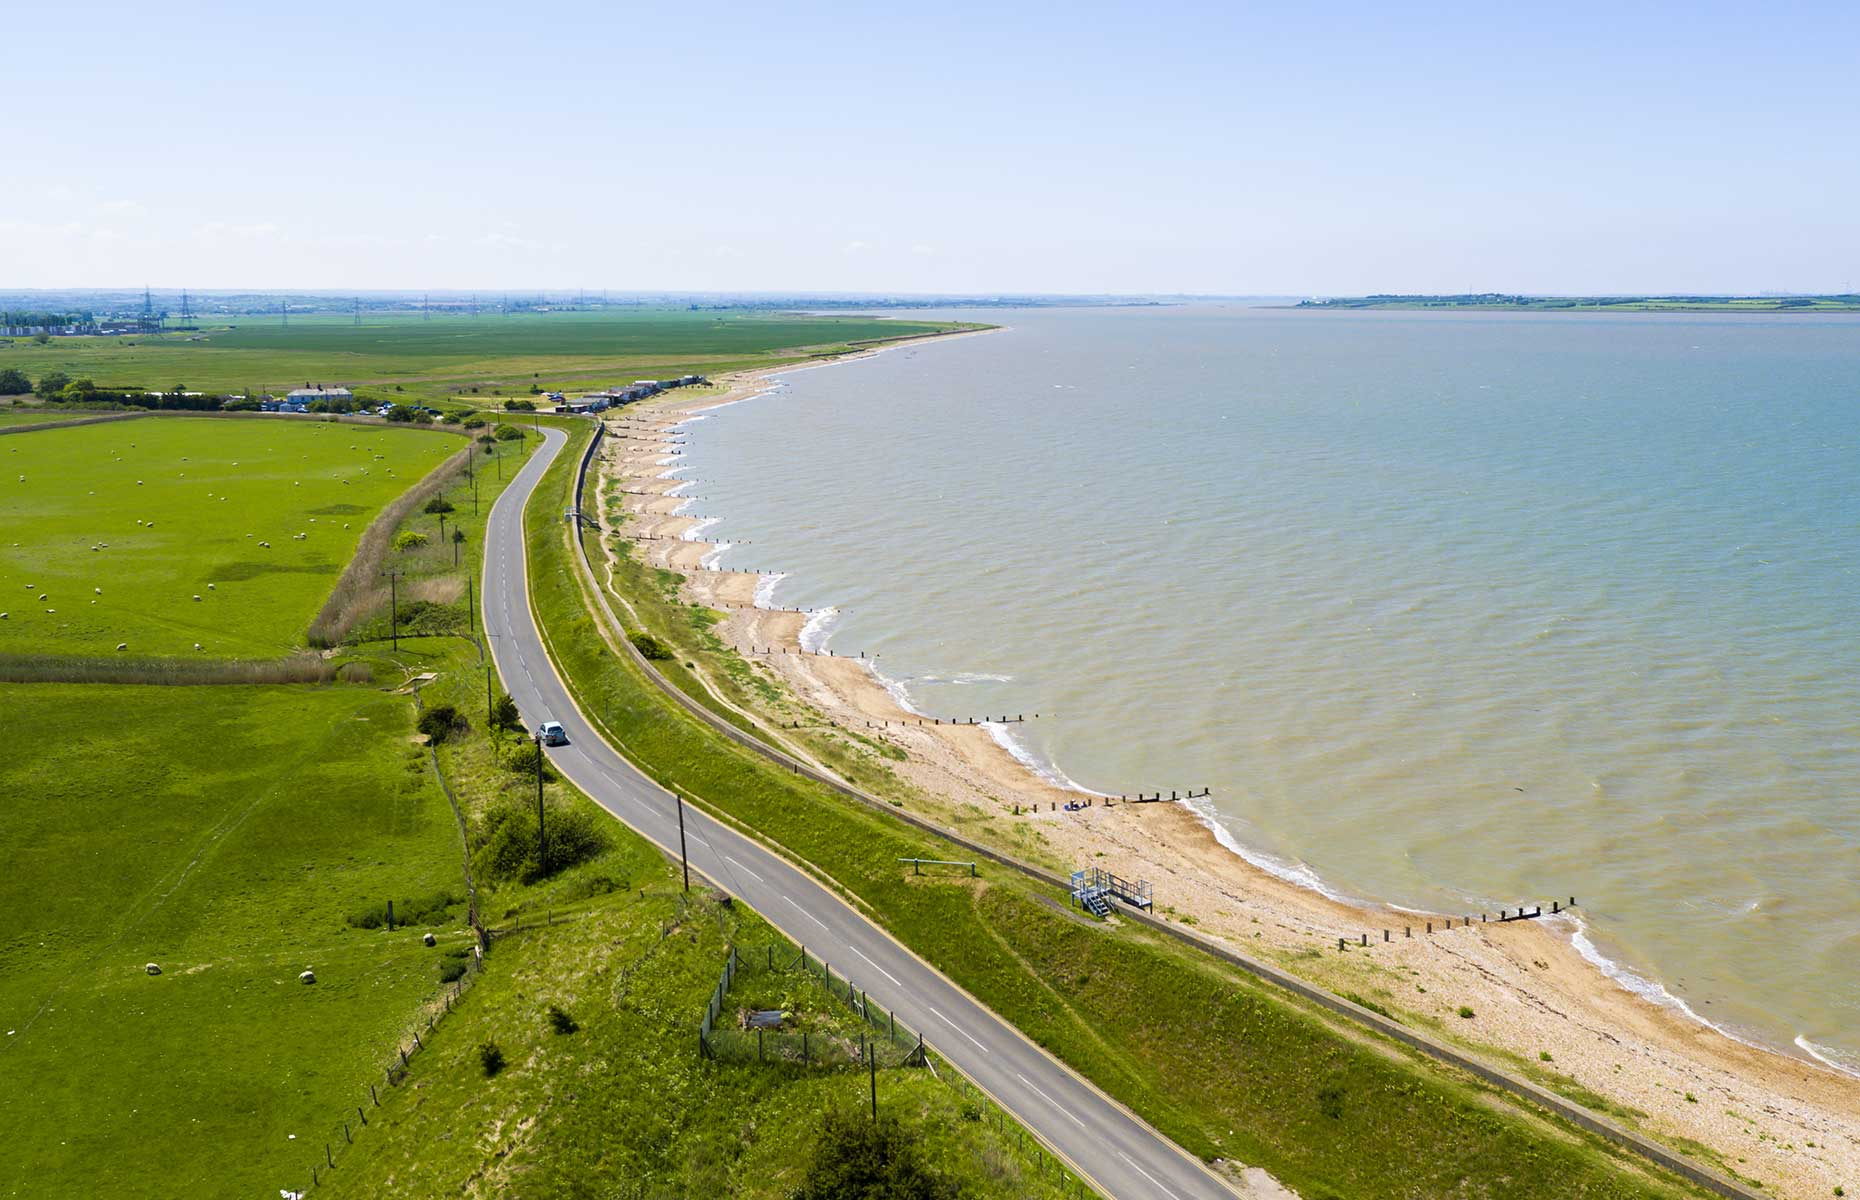 Aerial view of Seasalter, Kent (Image: Flyby Photography/Shutterstock)